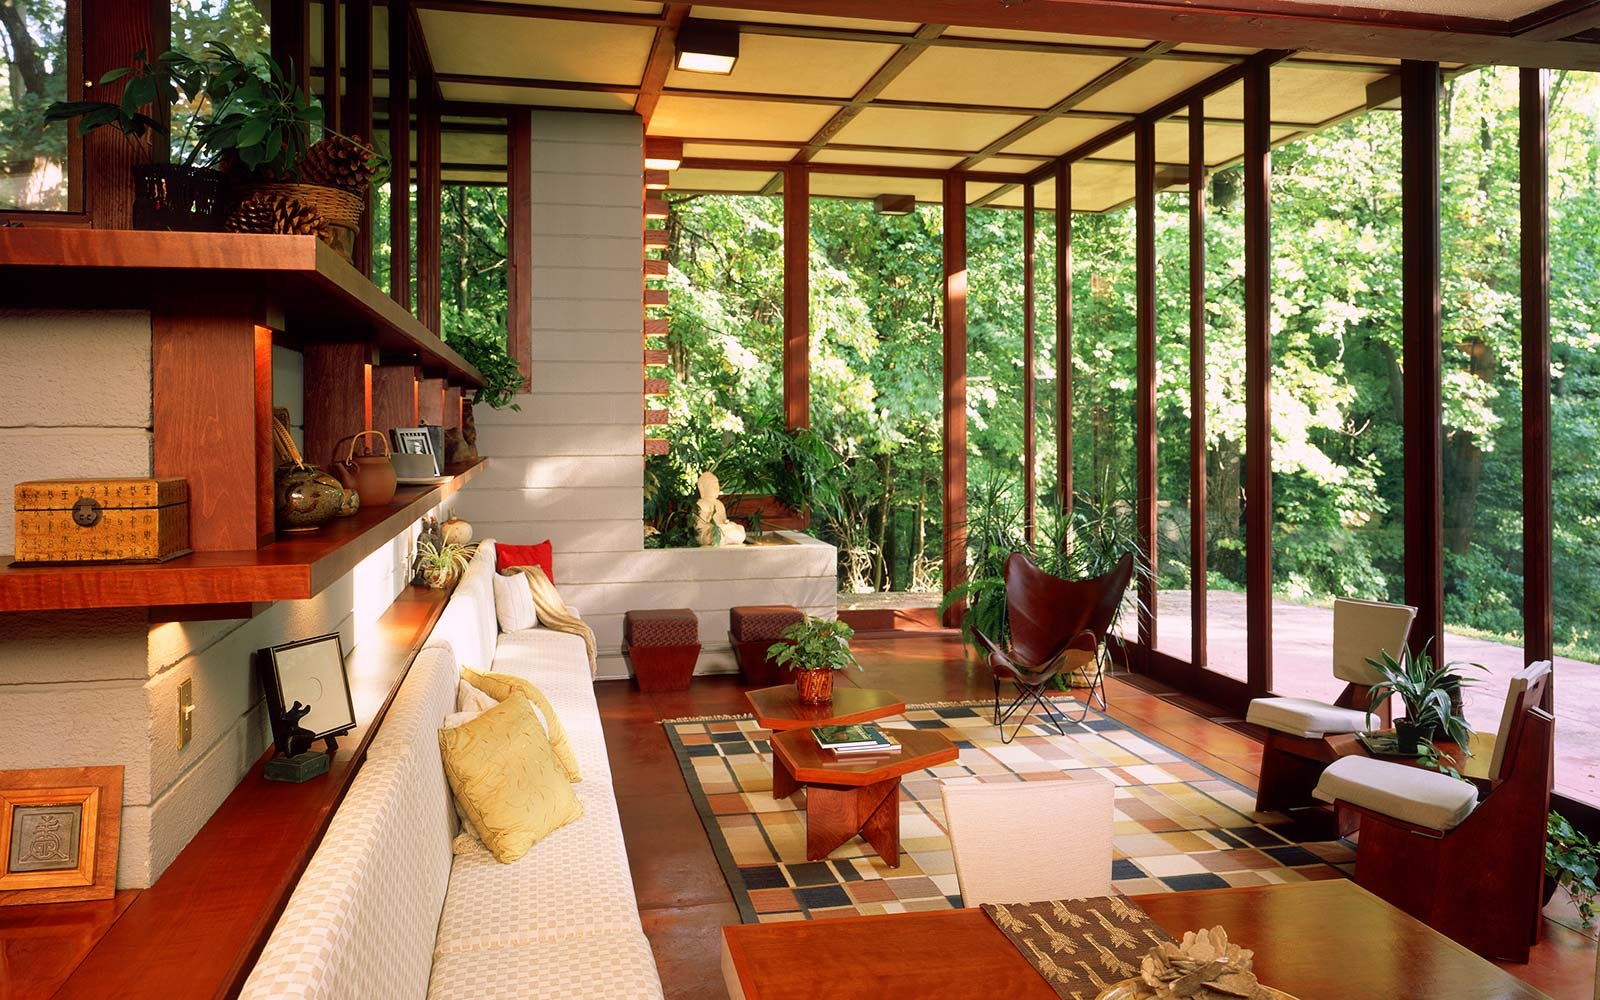 10 must see houses designed by architect frank lloyd wright travel leisure - Frank lloyd wright designs ...